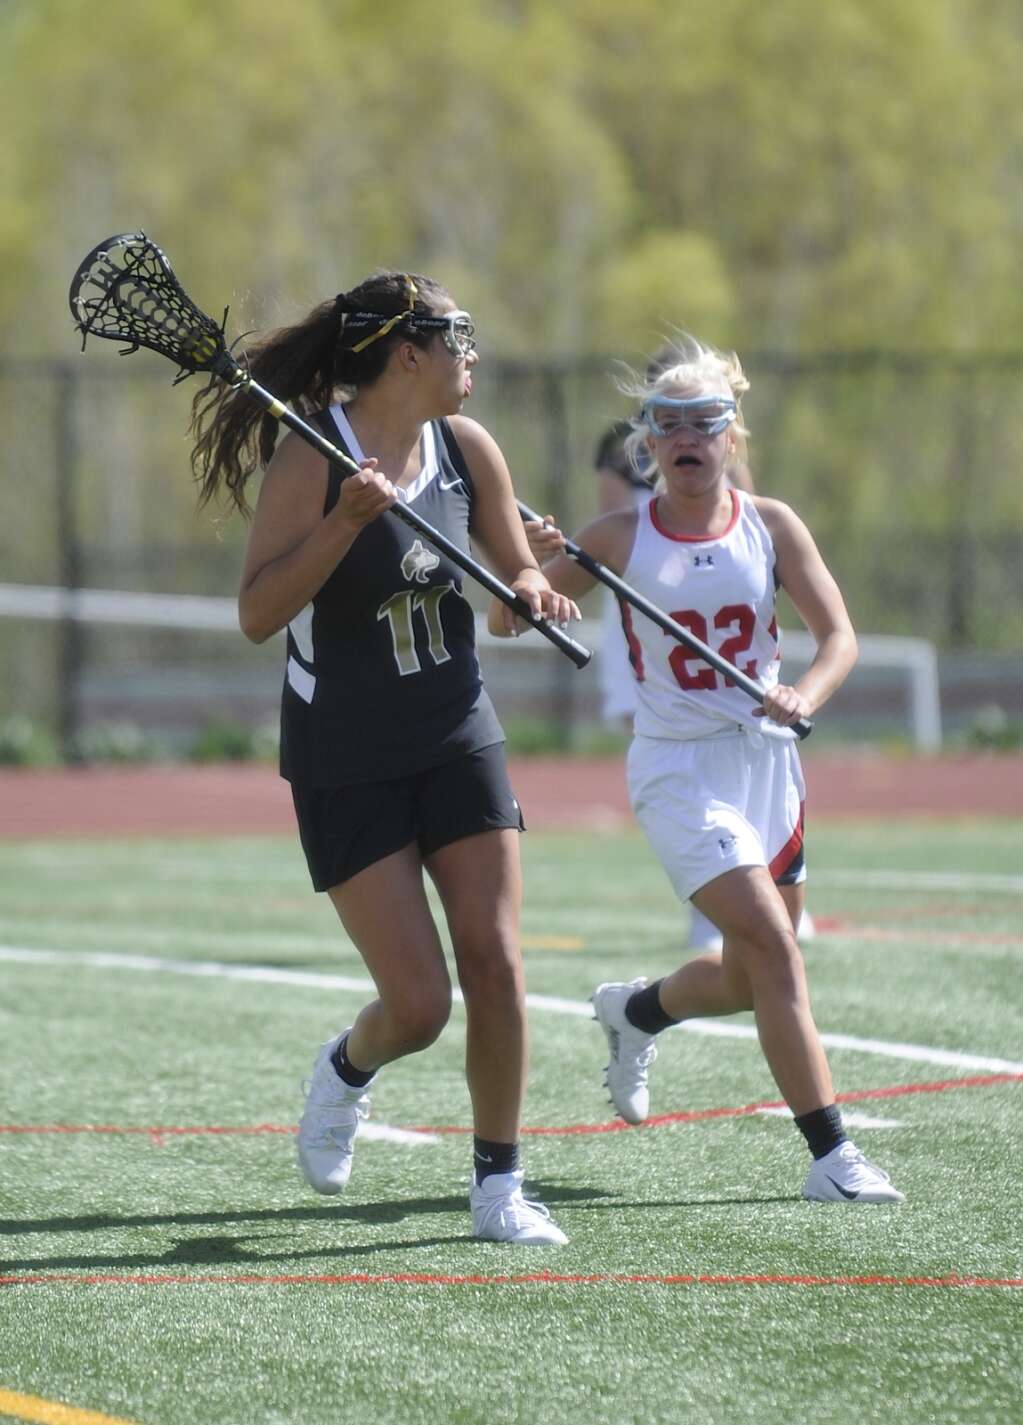 Steamboat Springs senior Erica Simmons defends during a girls lacrosse home game against Battle Mountain on Wednesday evening. (Shelby Reardon)